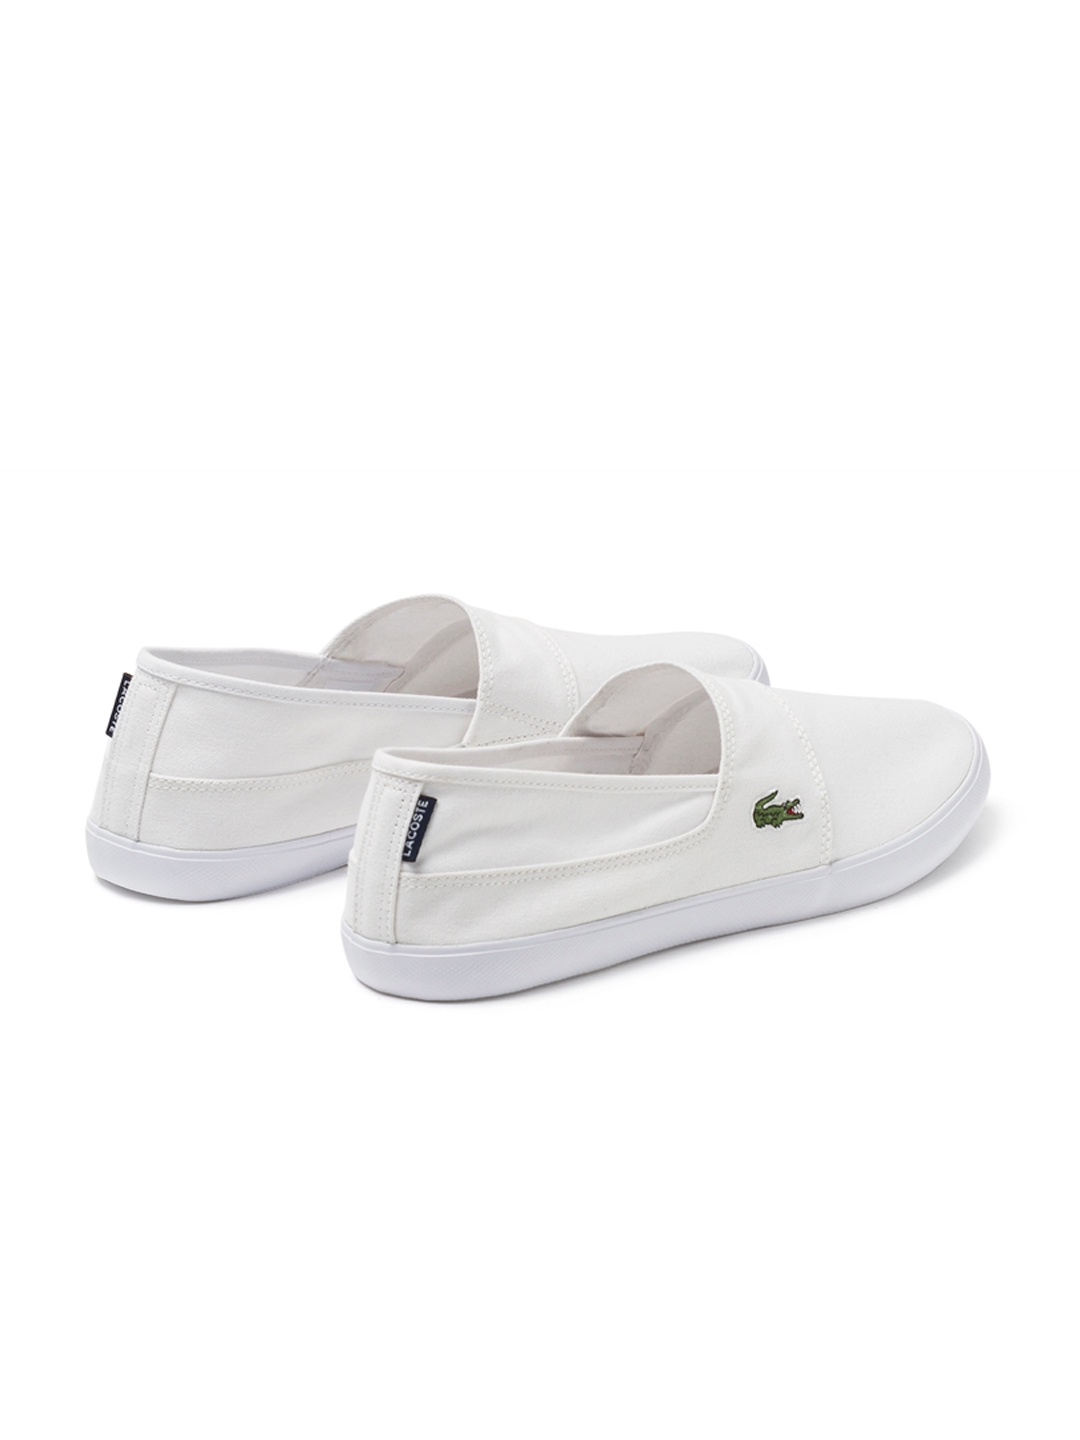 322fb91f205d Buy Lacoste Men White Slip On Shoes - Casual Shoes for Men 4304640 ...